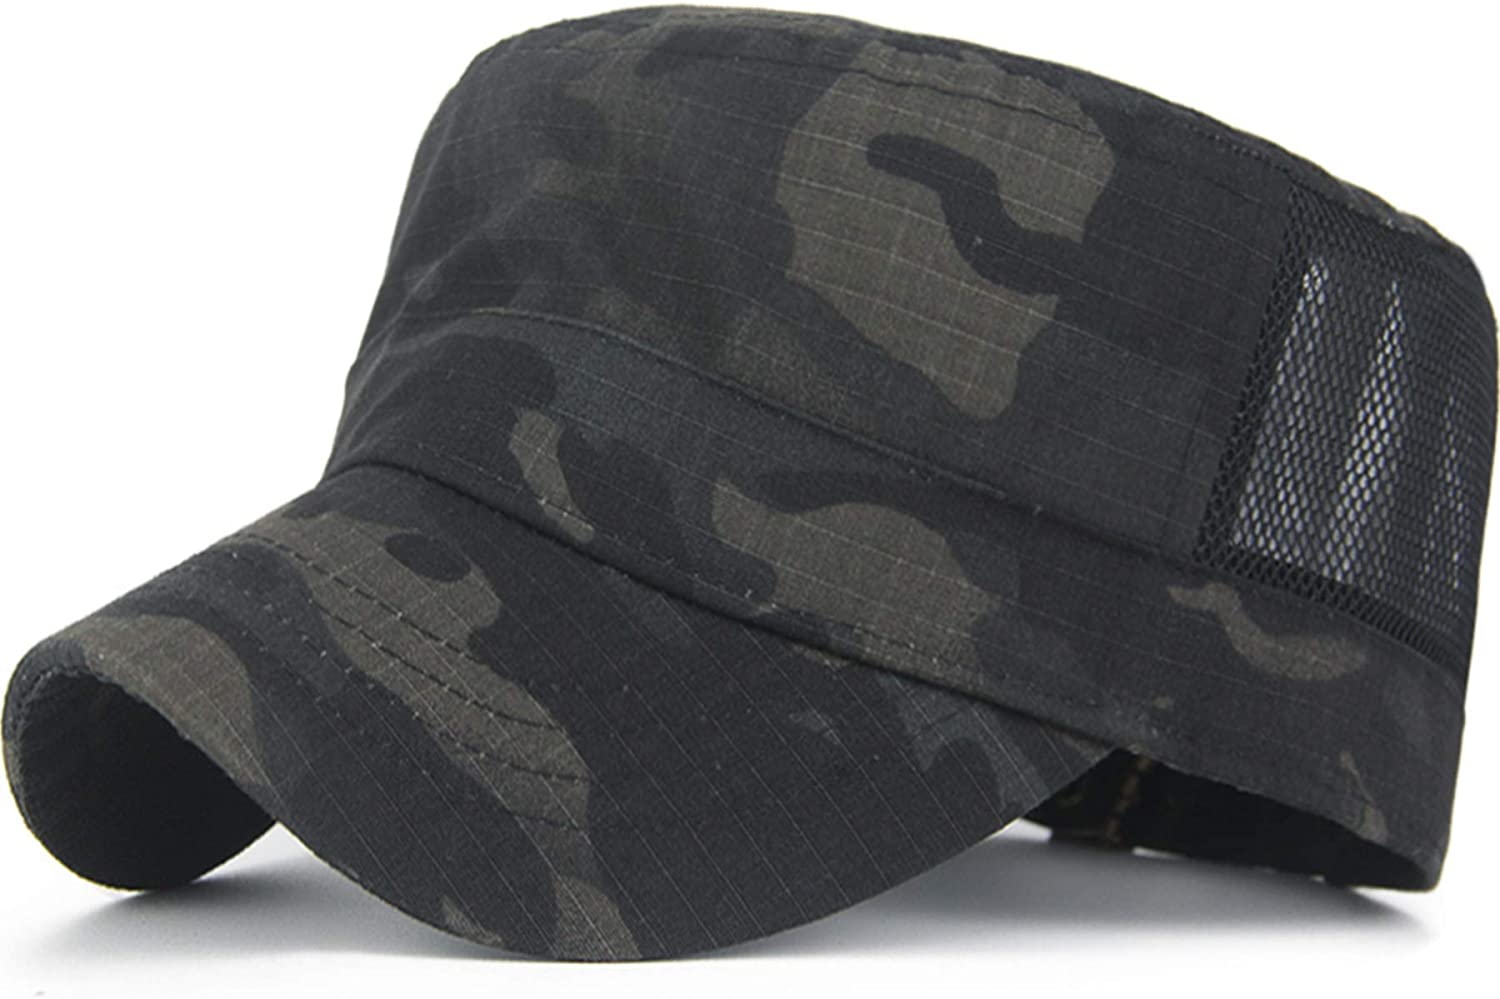 KEFITEVD Outdoor Military Camouflage Meshed Cap Mens Breathable Baseball Camping Hat US Flag Cap